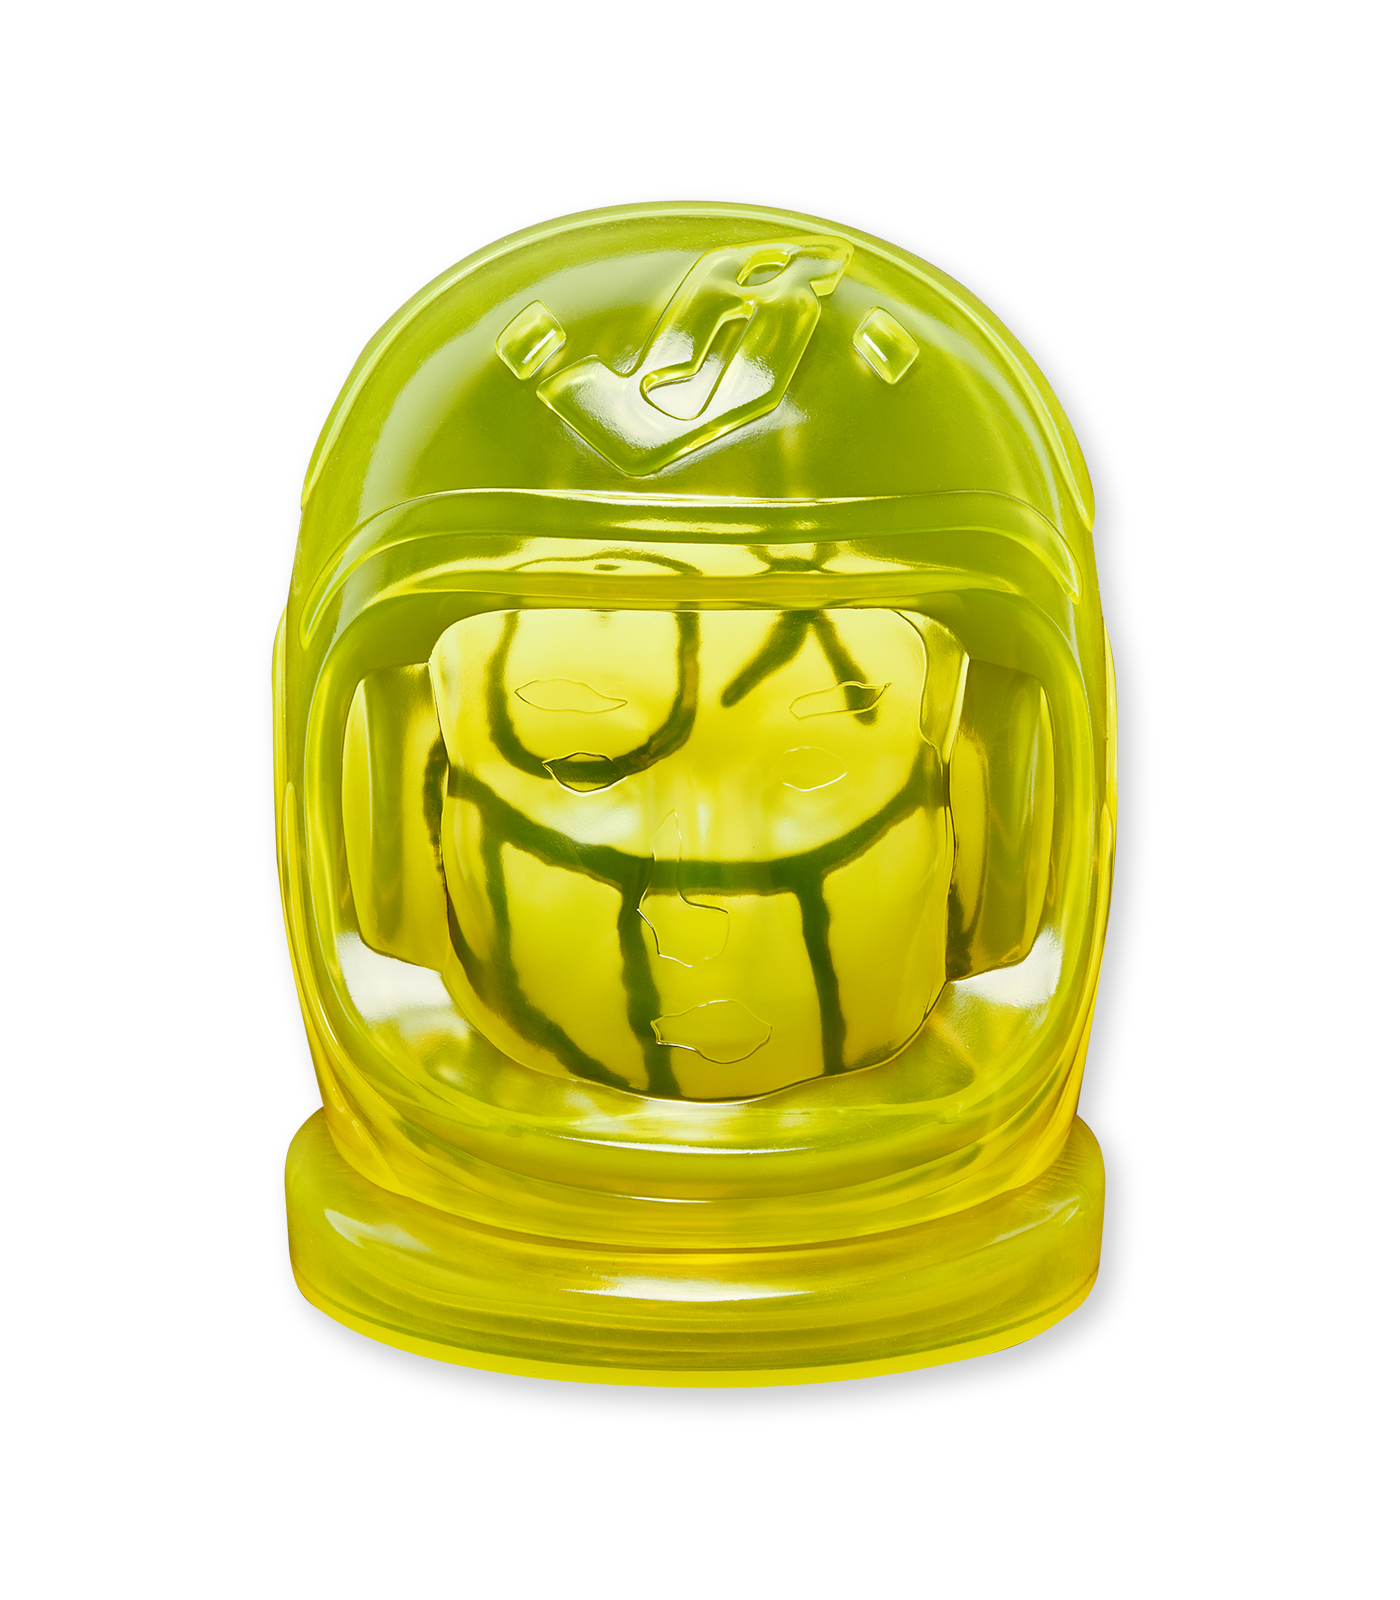 ANDRE ASTRO HELMET TOY - YELLOW